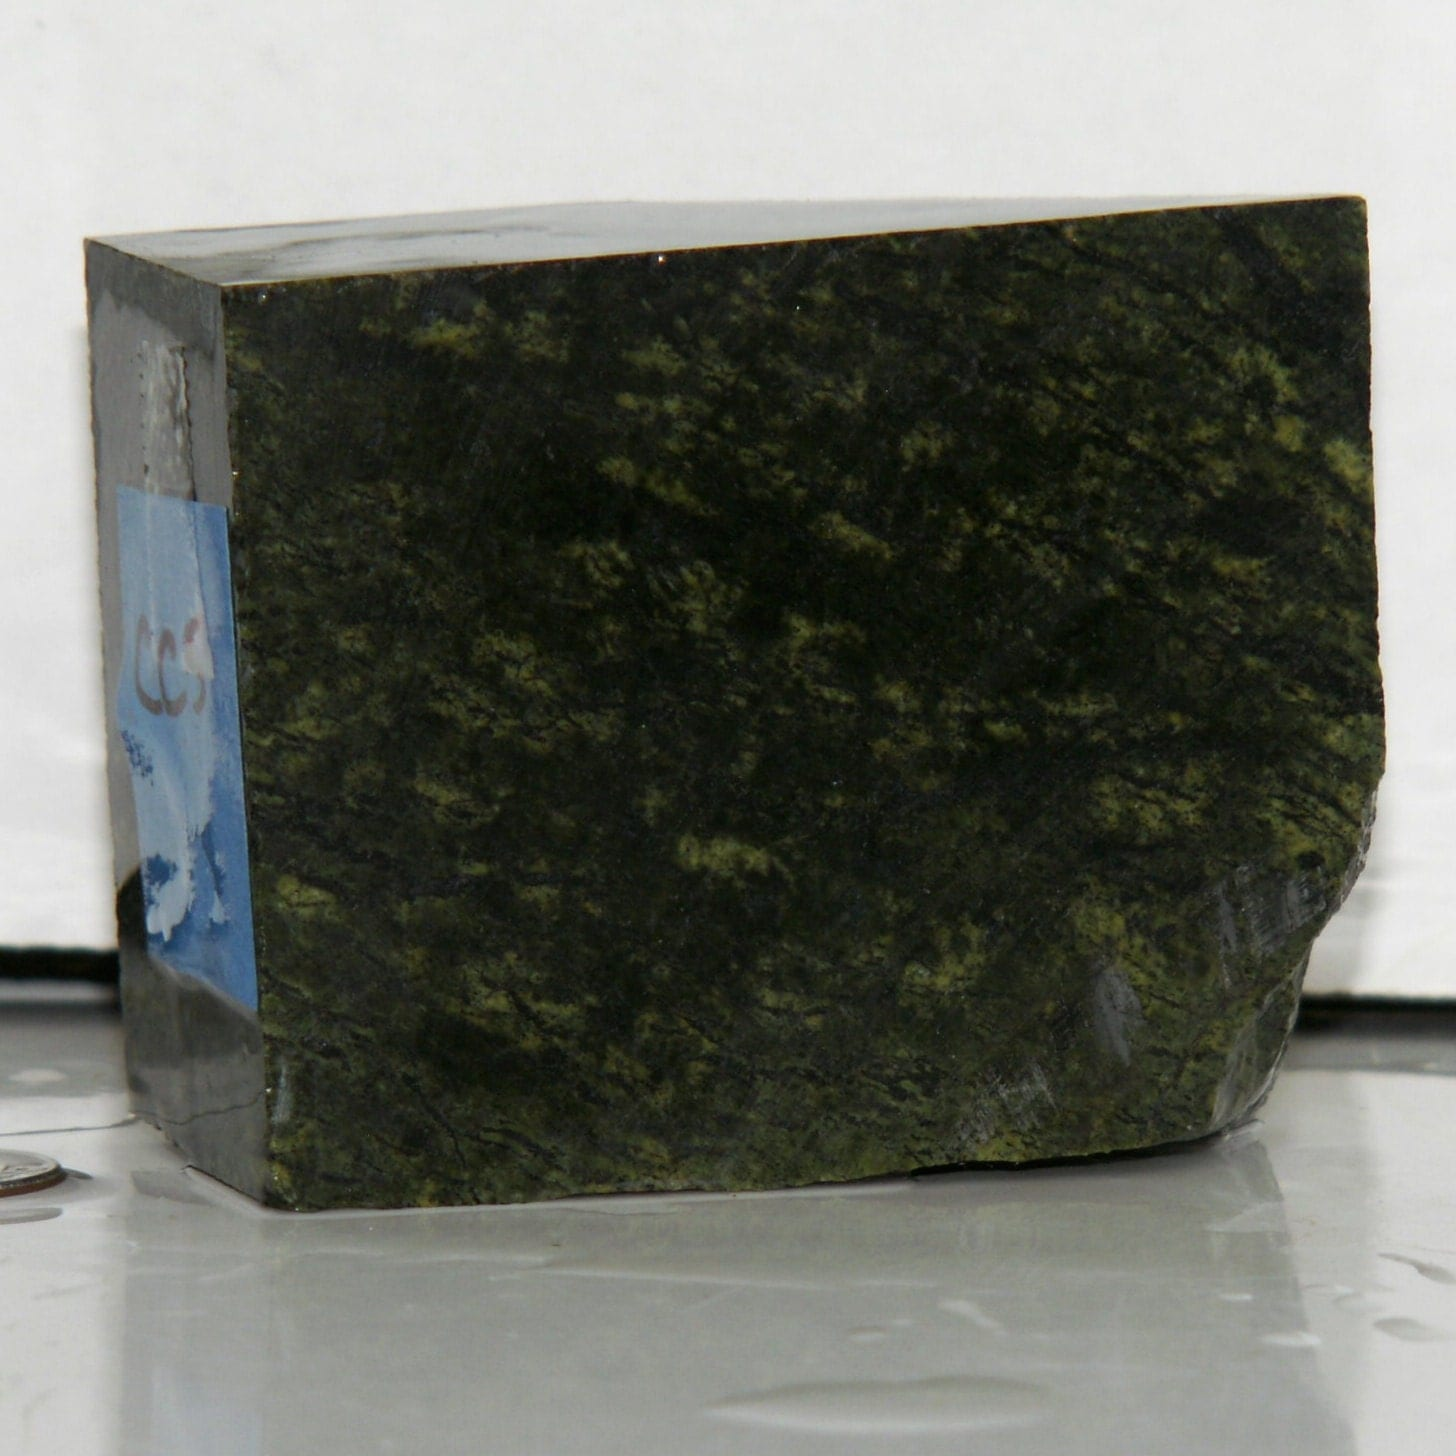 Serpentine Stone Slabs : Green serpentine carving stone slab for fetishes or by